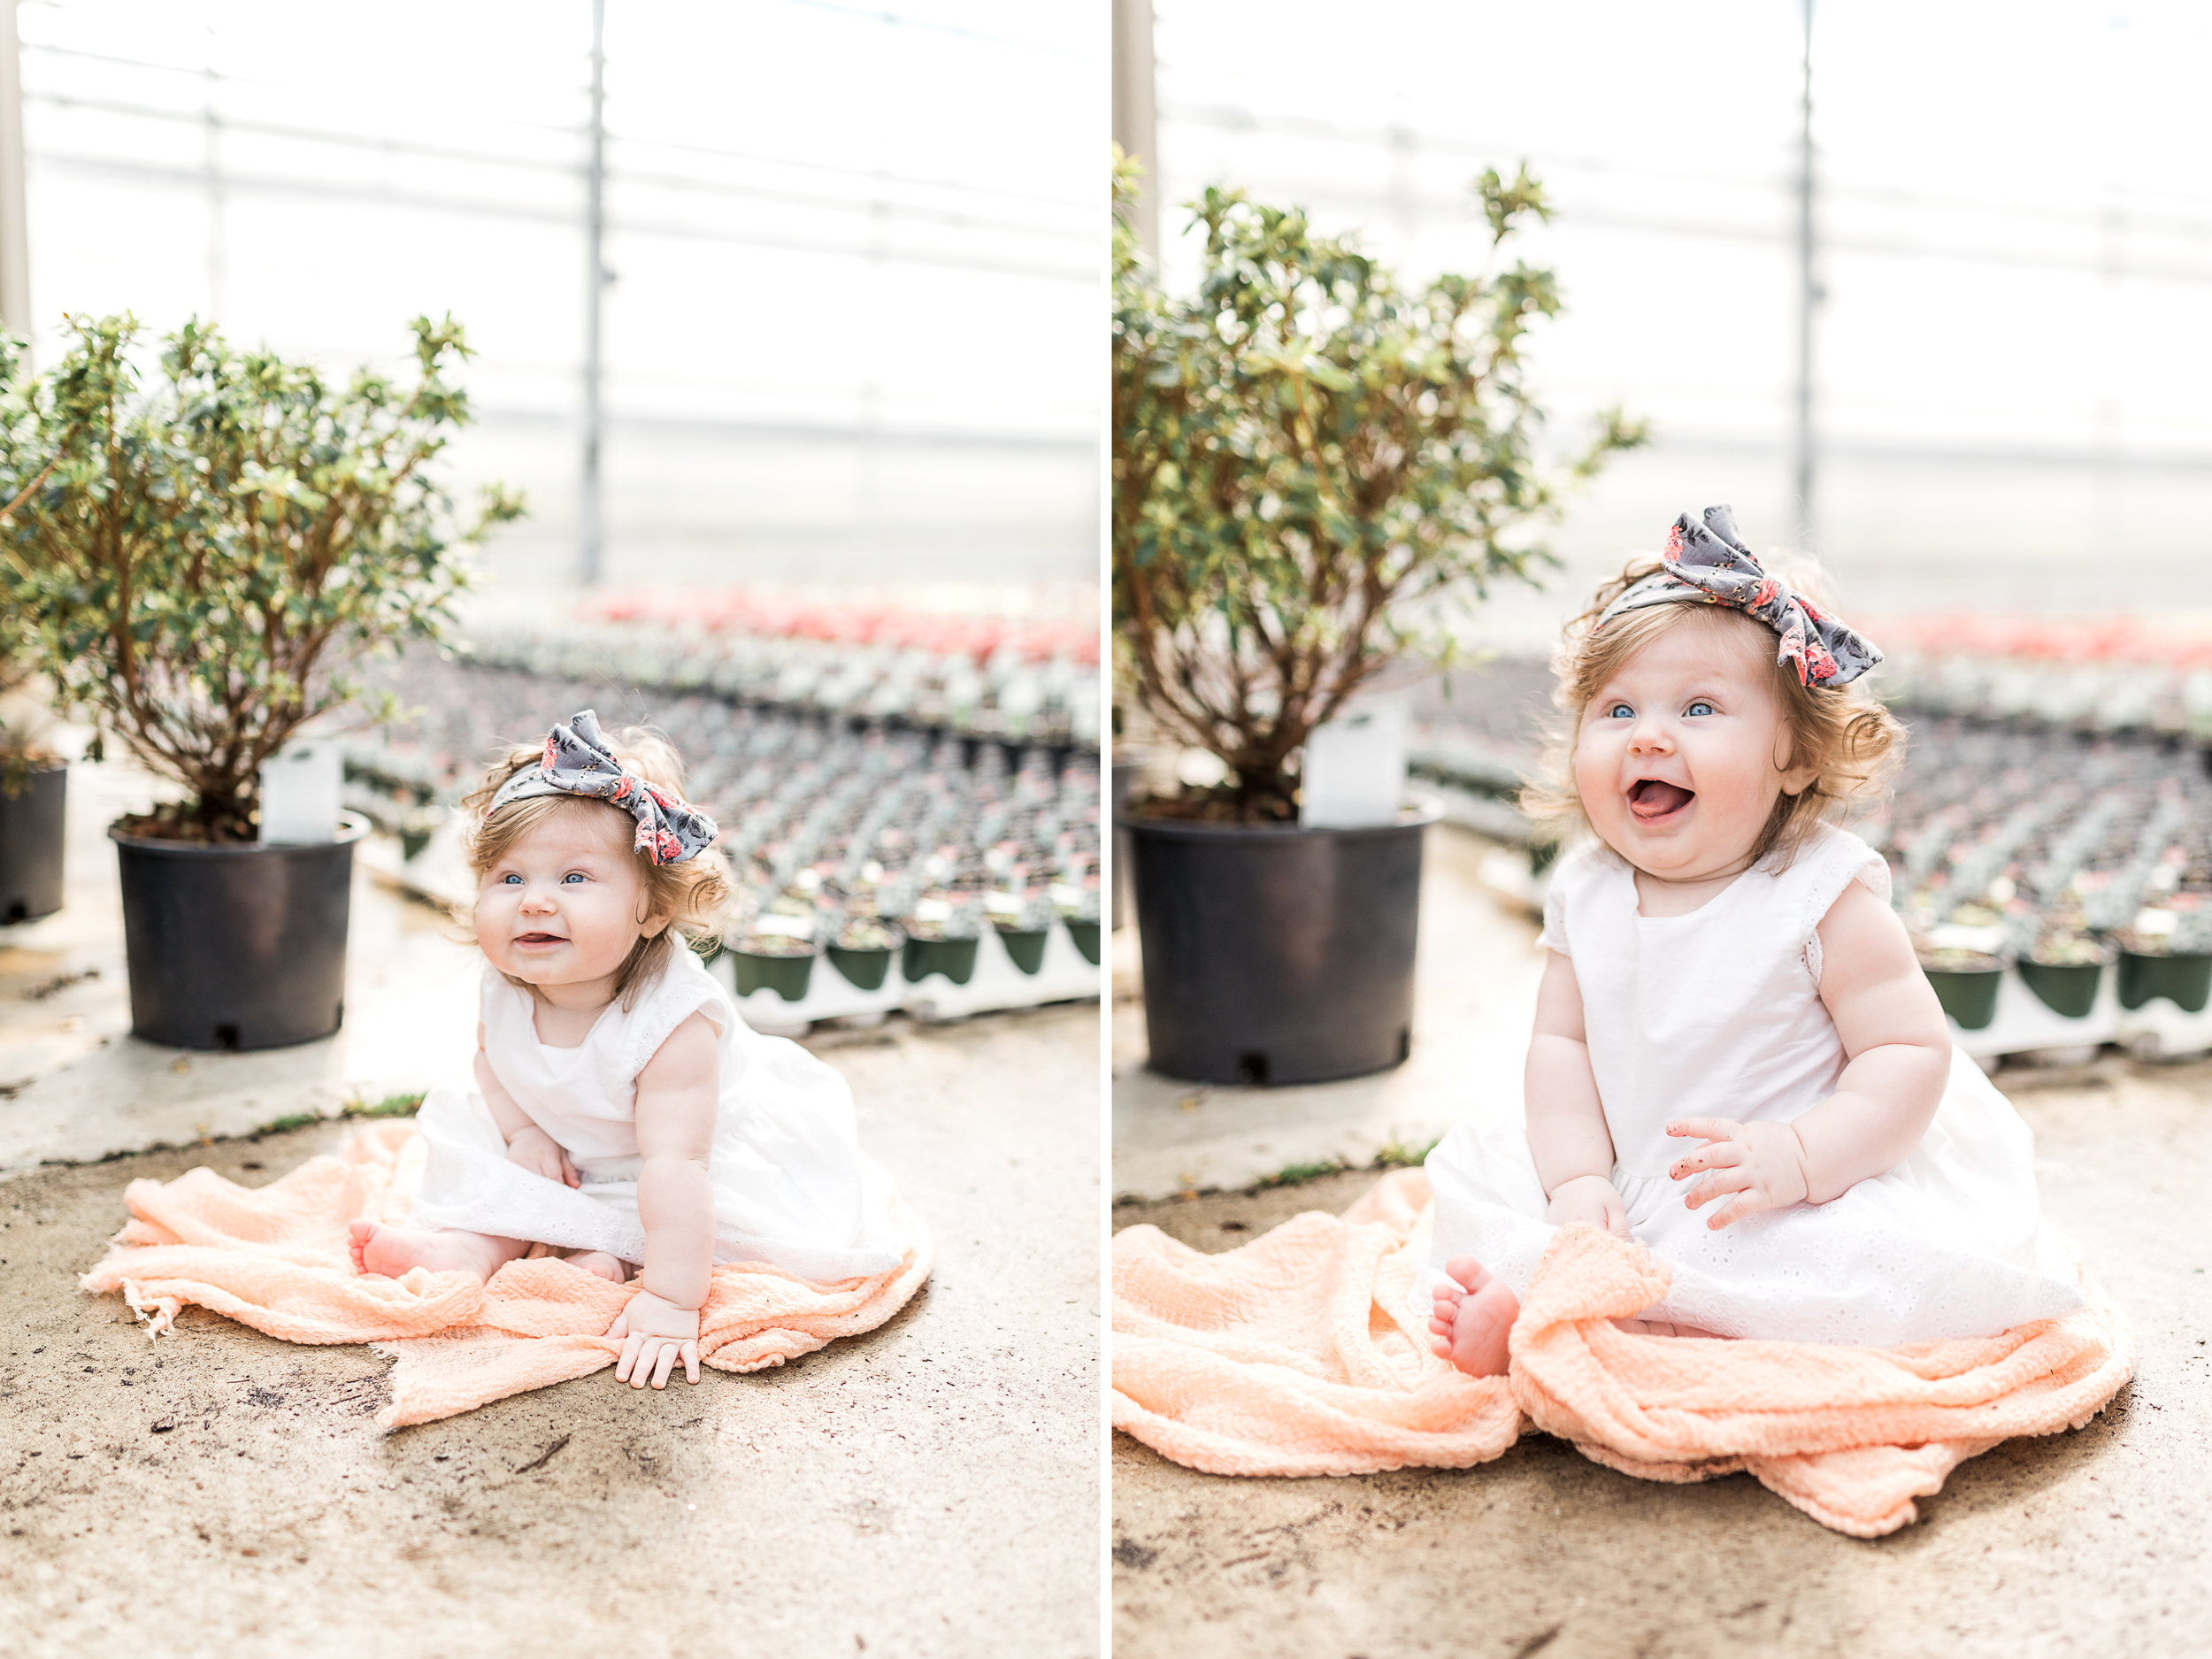 6 month baby girl milestone session at a greenhouse